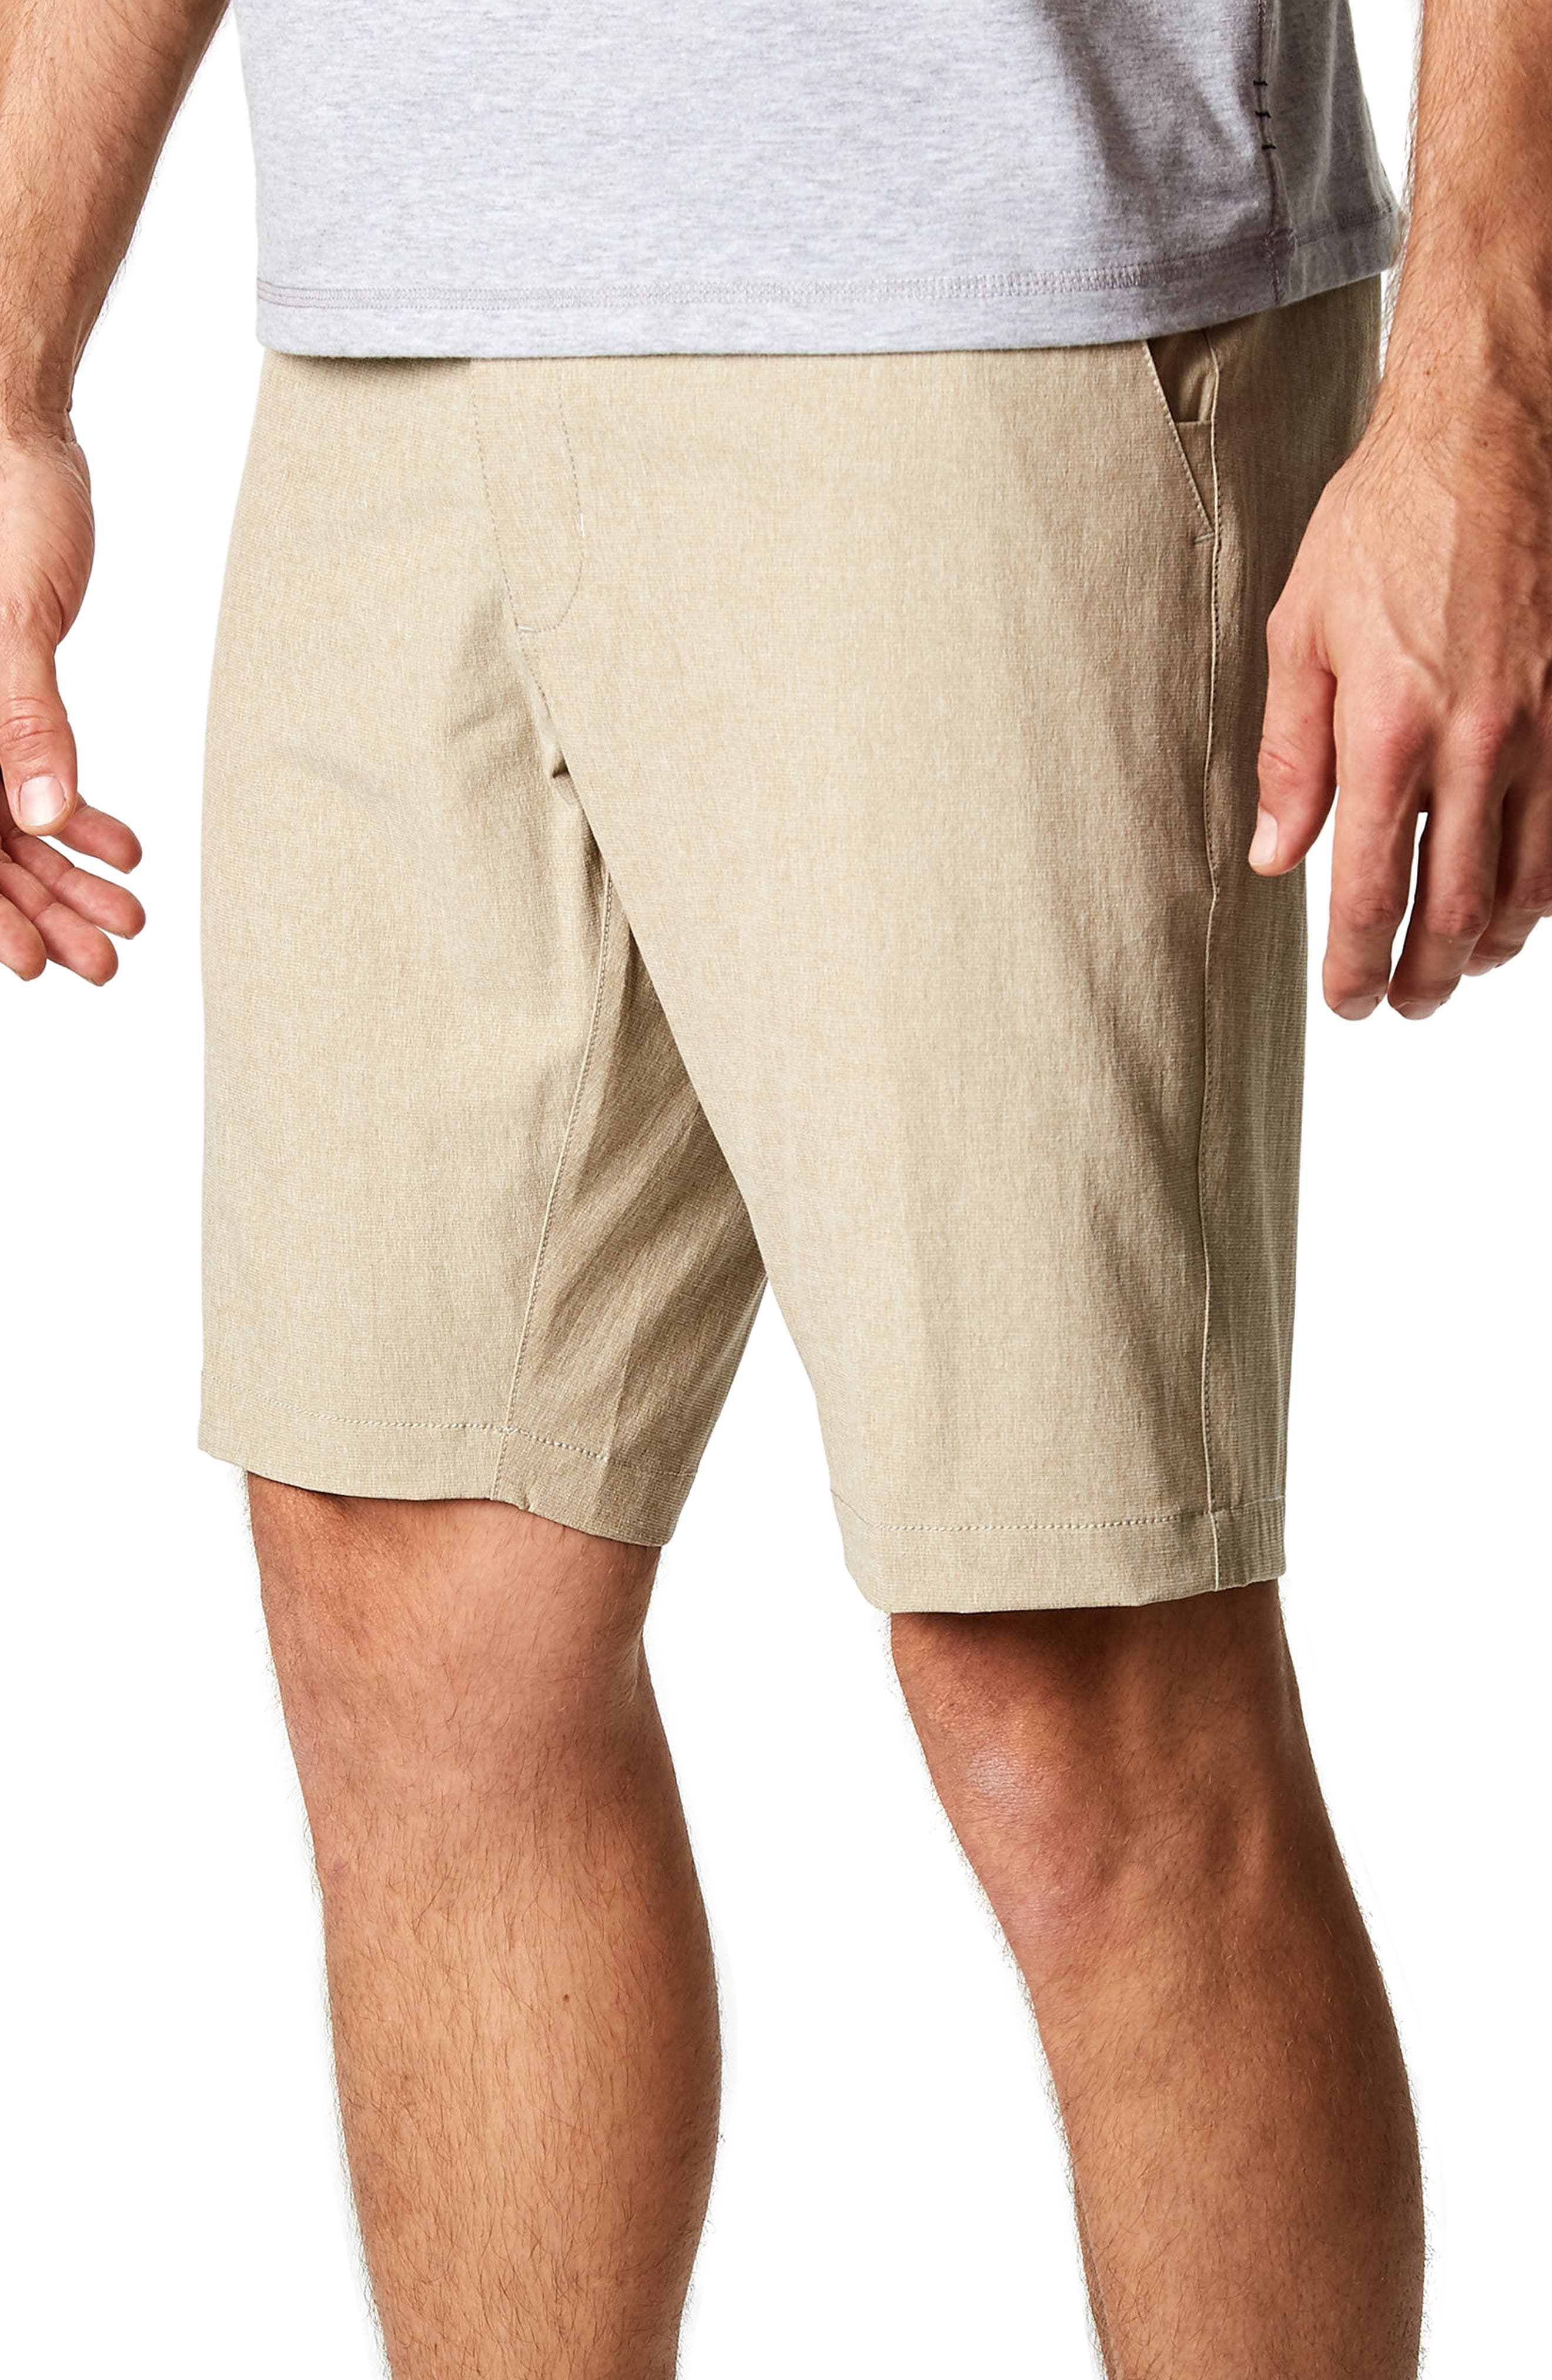 Adrenaline Stretch Shorts,                             Alternate thumbnail 3, color,                             Khaki